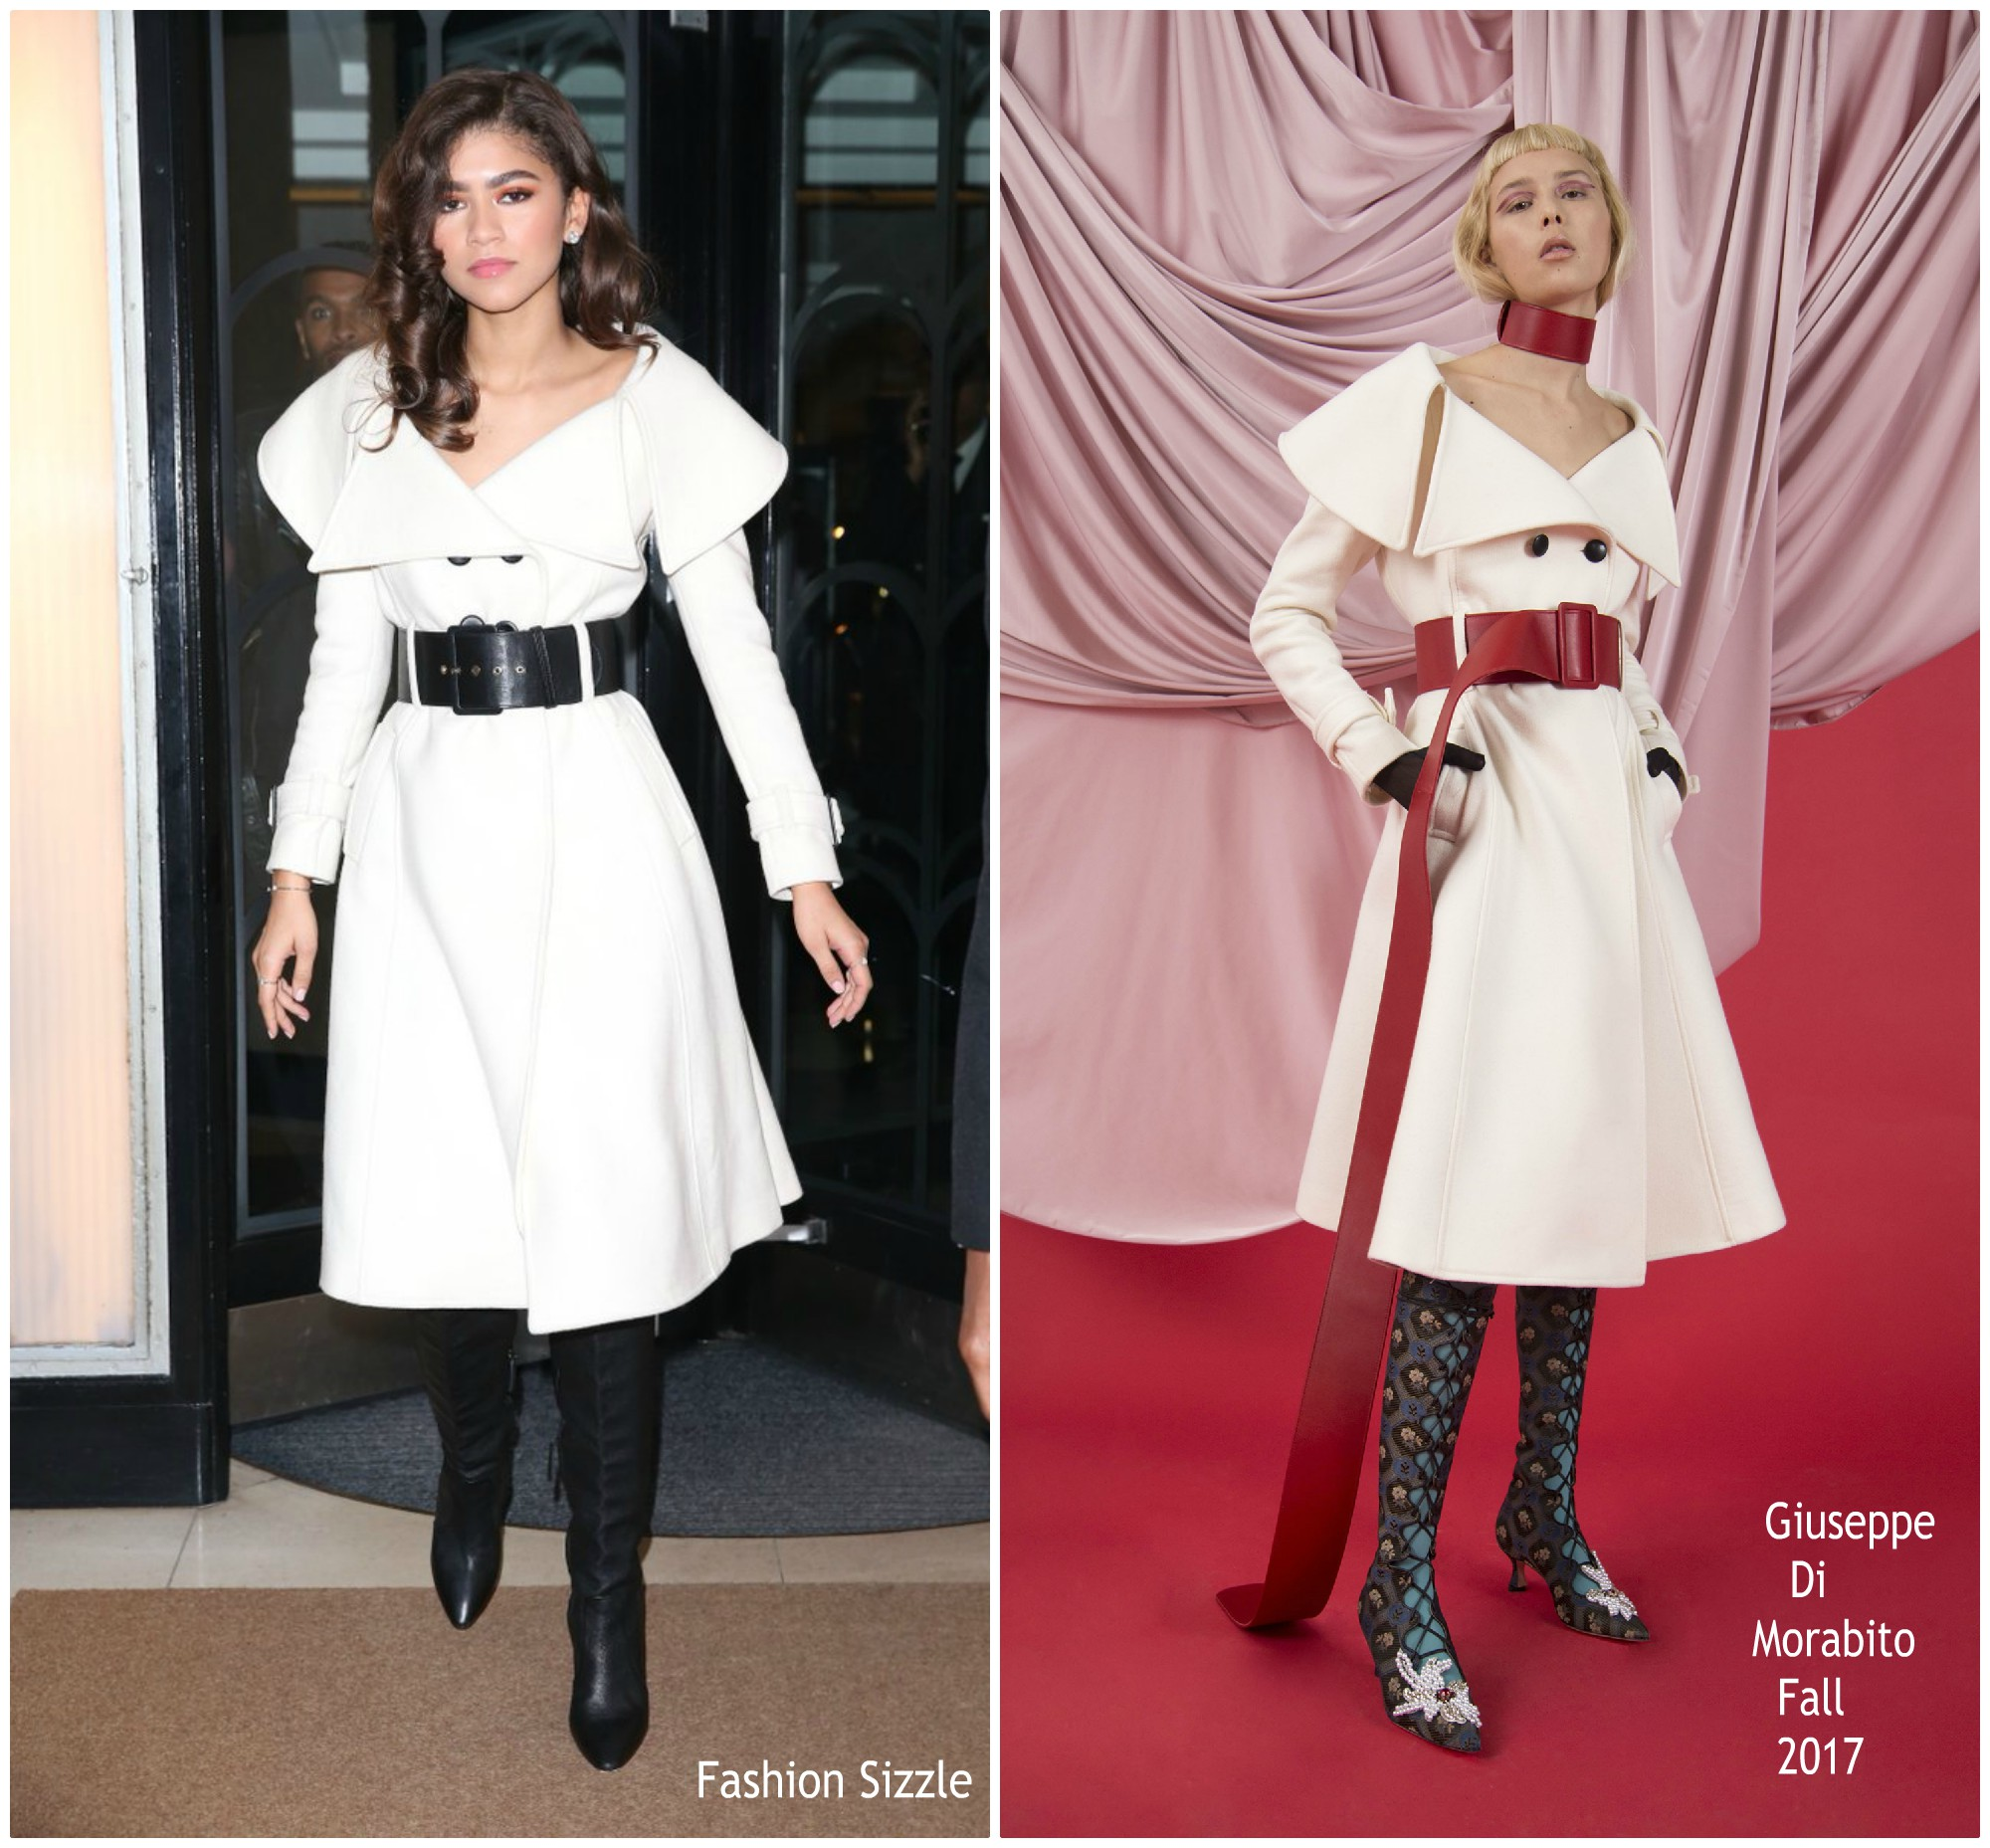 zendaya-coleman-in-giuseppe-di-morabito- out-in-london